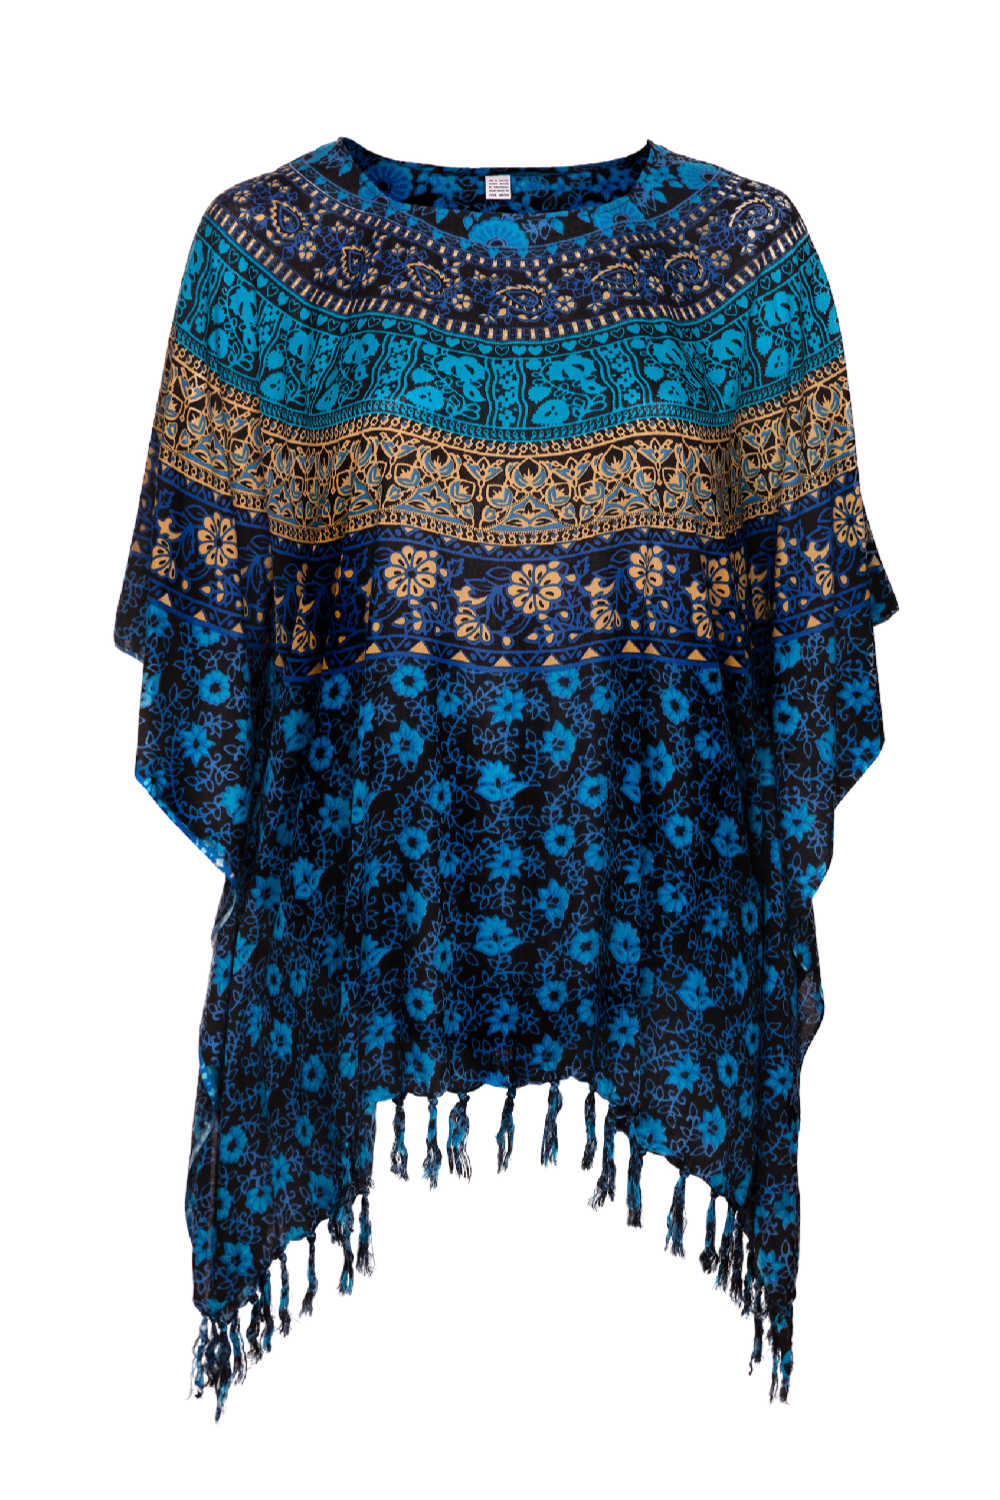 kaftan-top-plus-size-blue-floral-mandala